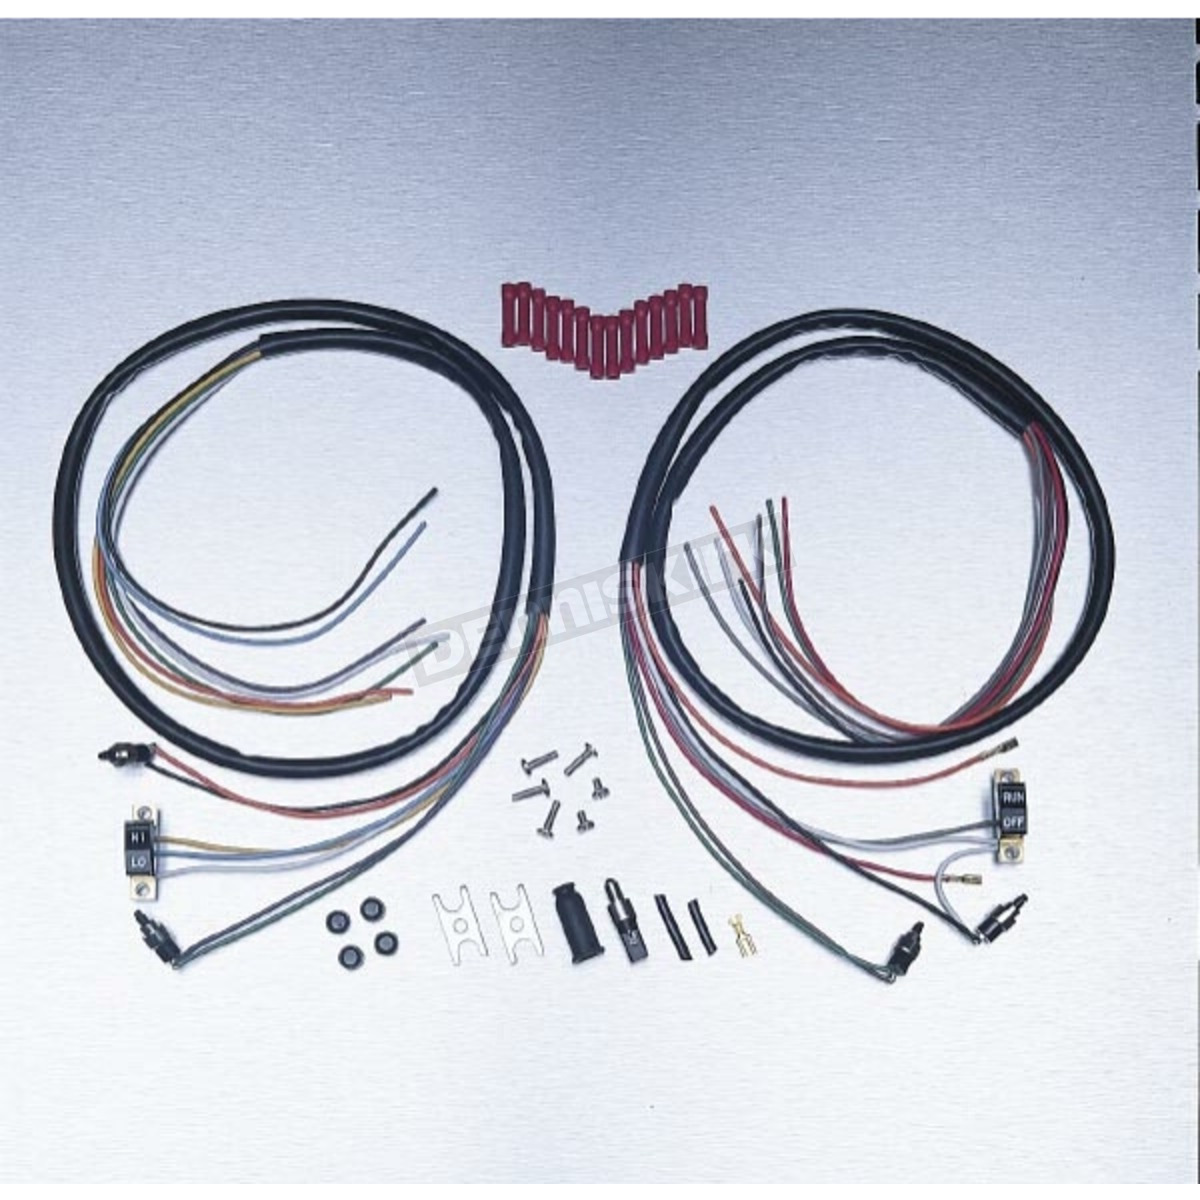 ds305202 drag specialties complete handlebar wiring harness ds 305202 Drag Specialties Motorcycle Parts Catalog at gsmportal.co